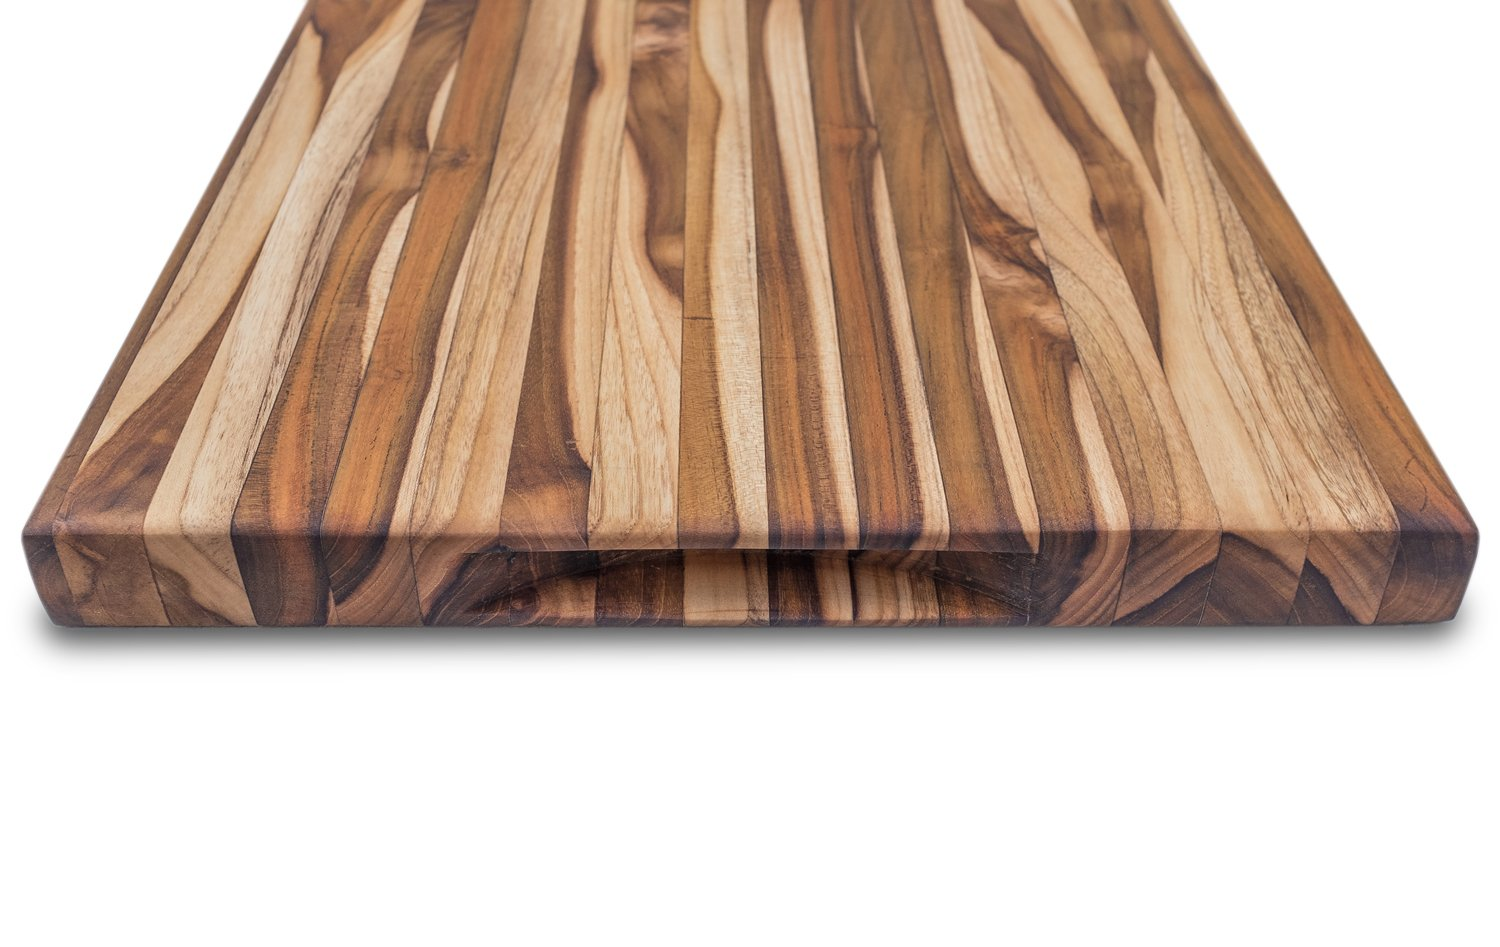 JD&Sons Teak Wood Large Cutting Board Perfect for Home Chefs & Professionals Gentle to Knife Durable Cut Board (20x15x1.5 in.) by JD&Sons (Image #5)